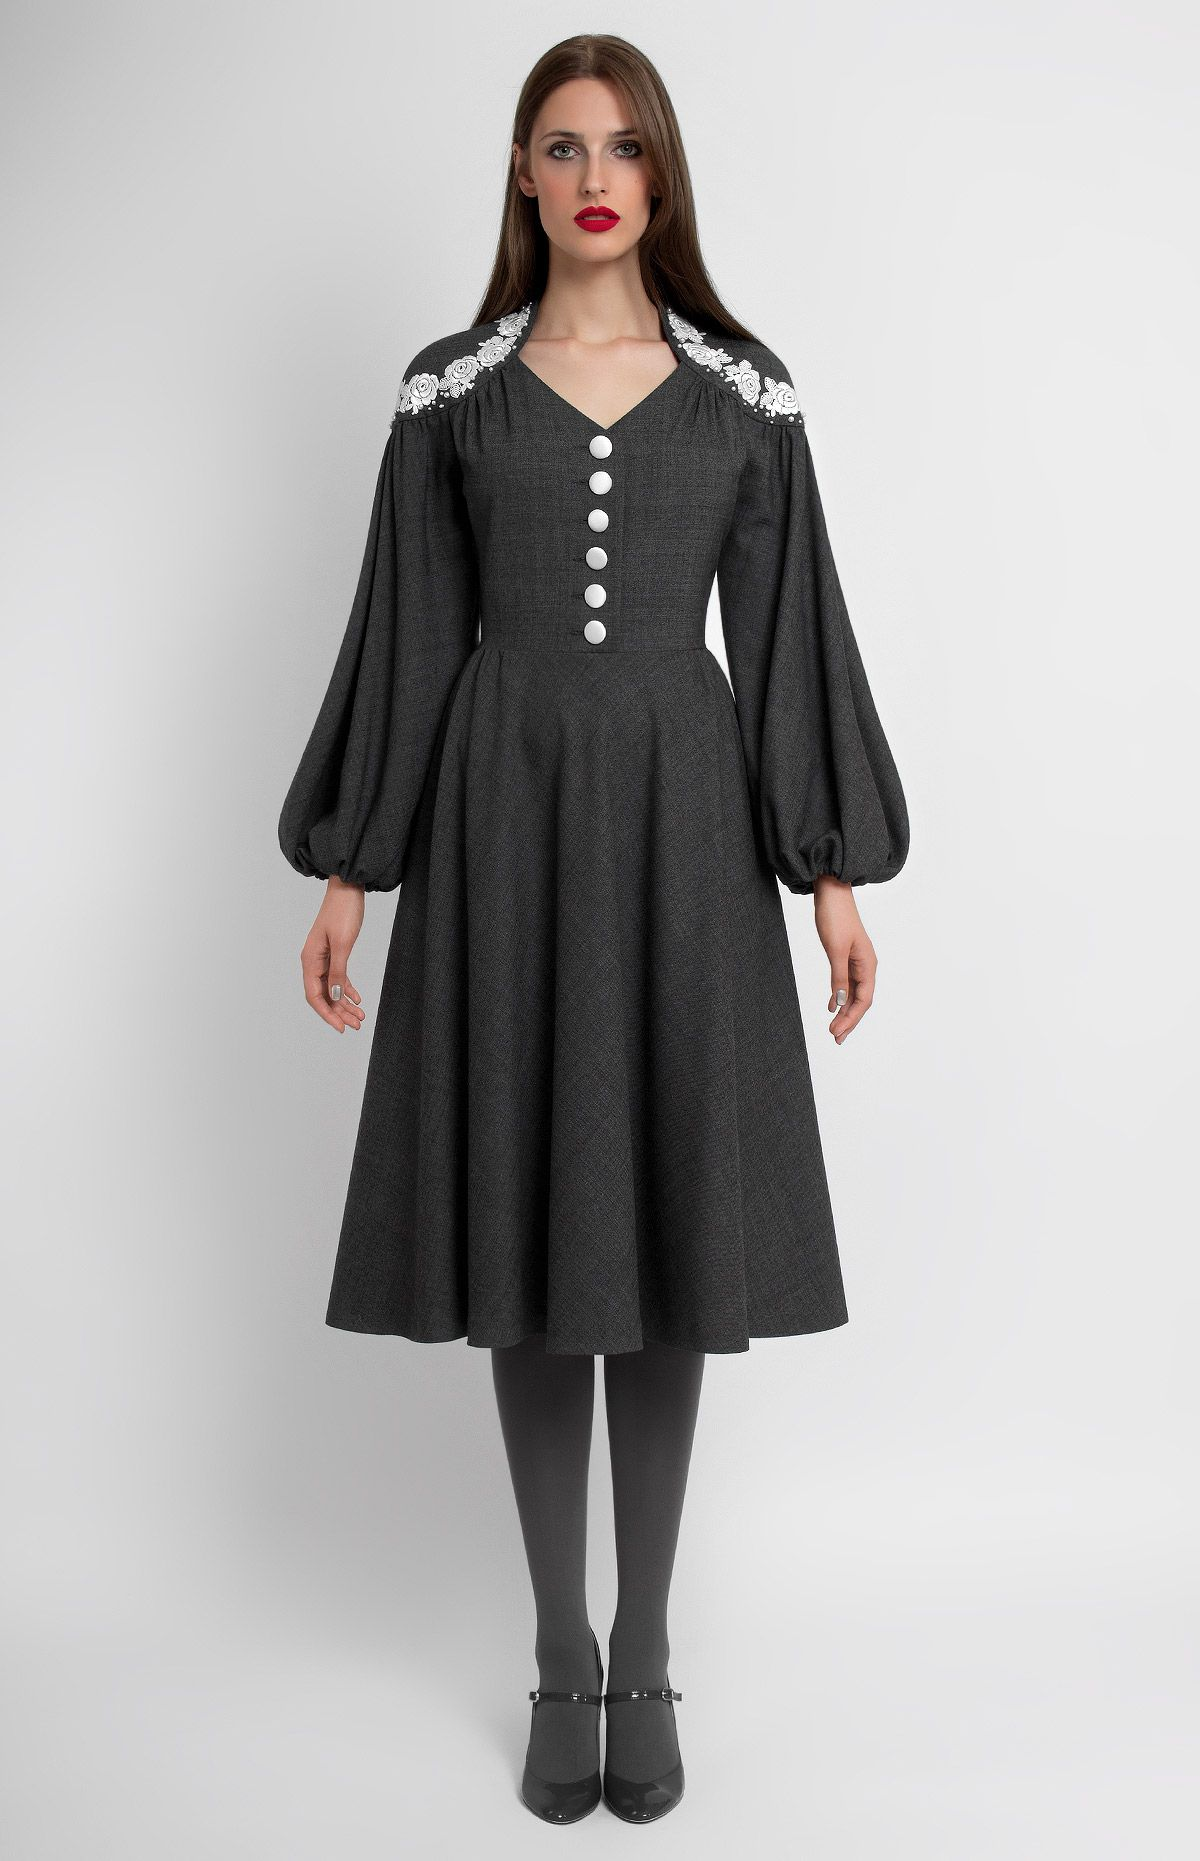 Slimfit true wool dress with bellshaped sleeves lace and bead